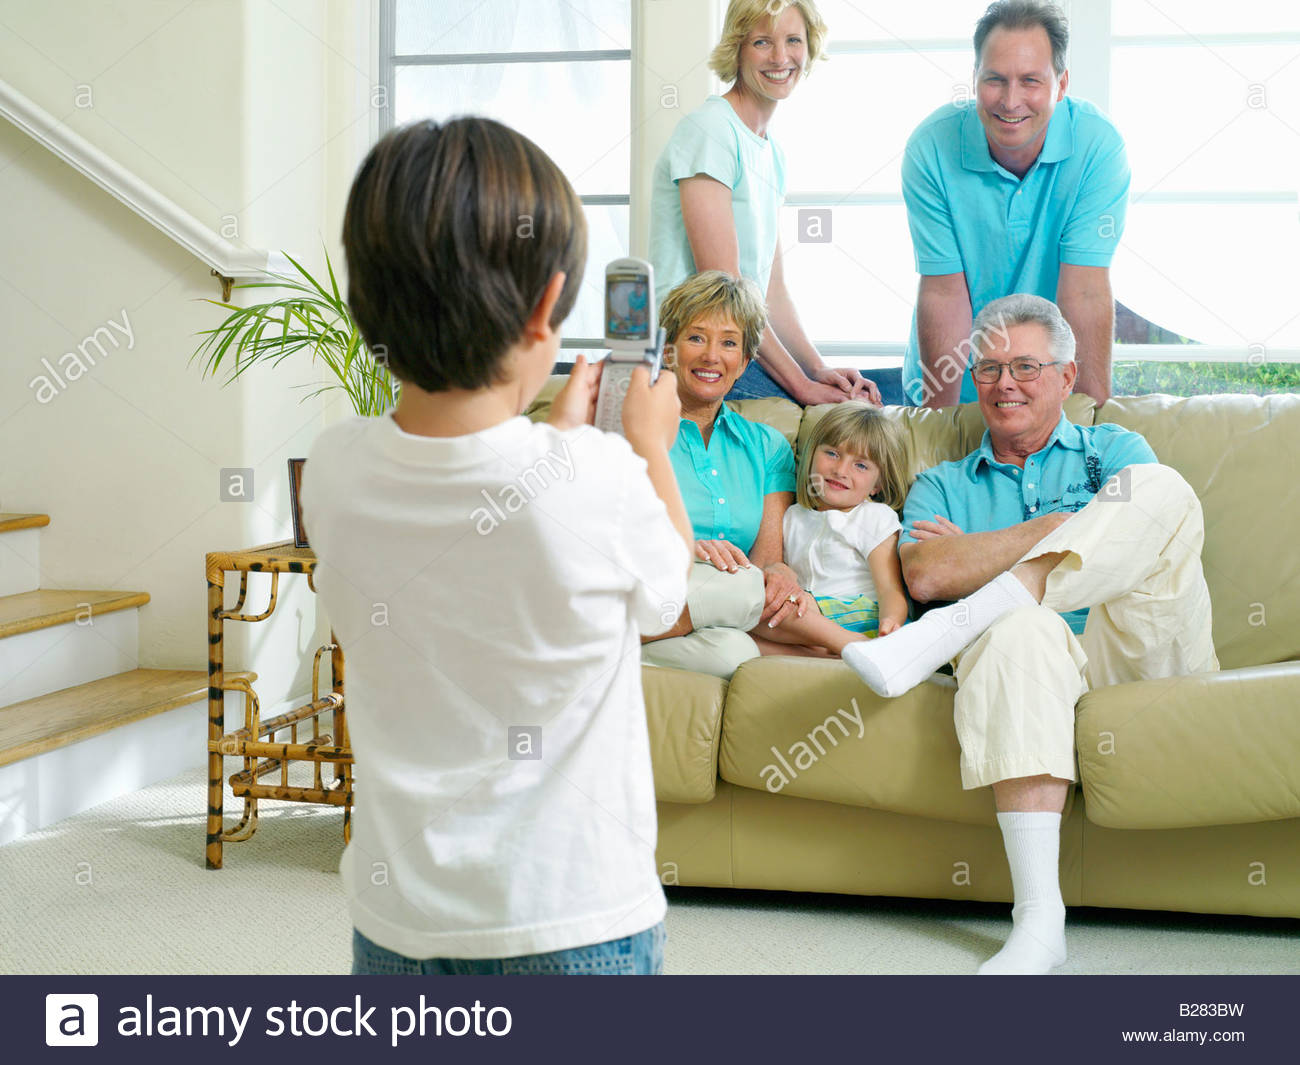 Boy (7-9) taking photograph with mobile phone of parents, grandparents and sister (6-8) on sofa, smiling - Stock Image